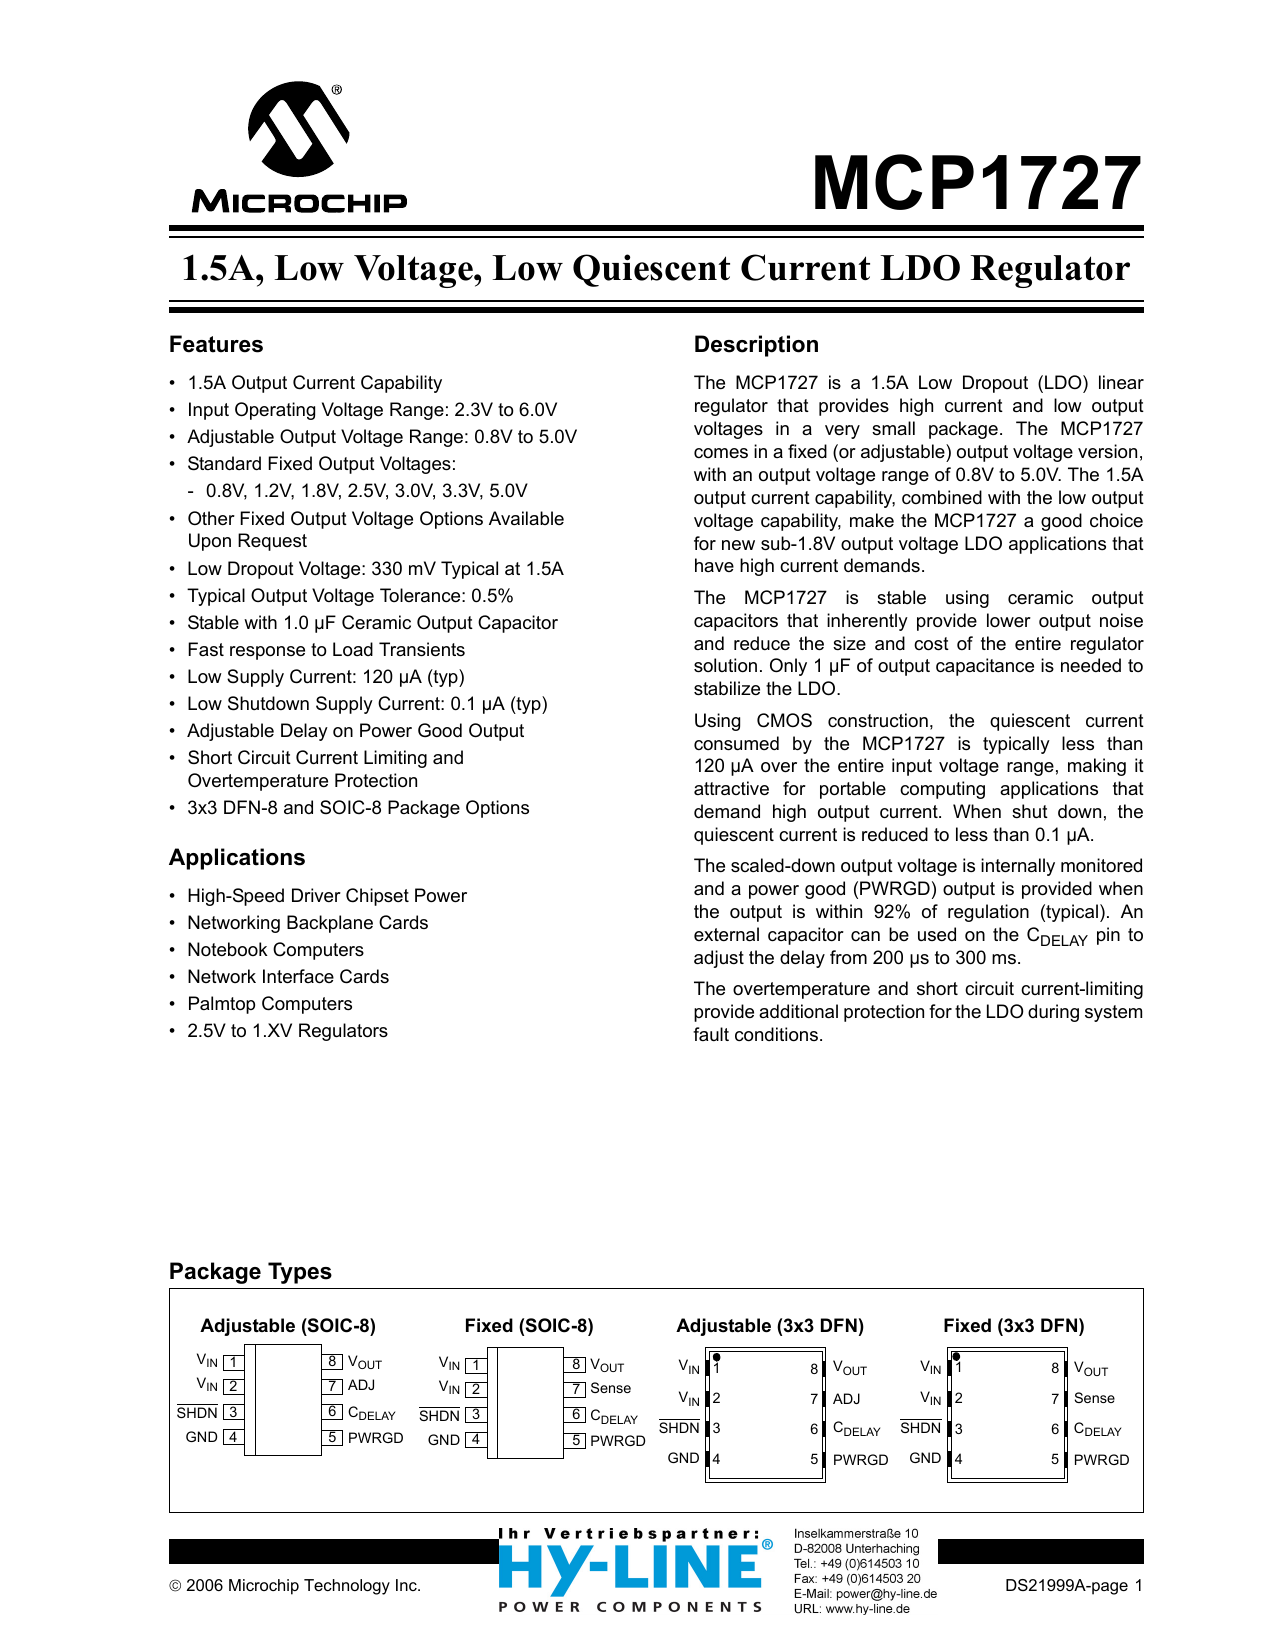 15a Low Voltage Quiescent Current Ldo Regulator Data Sheet